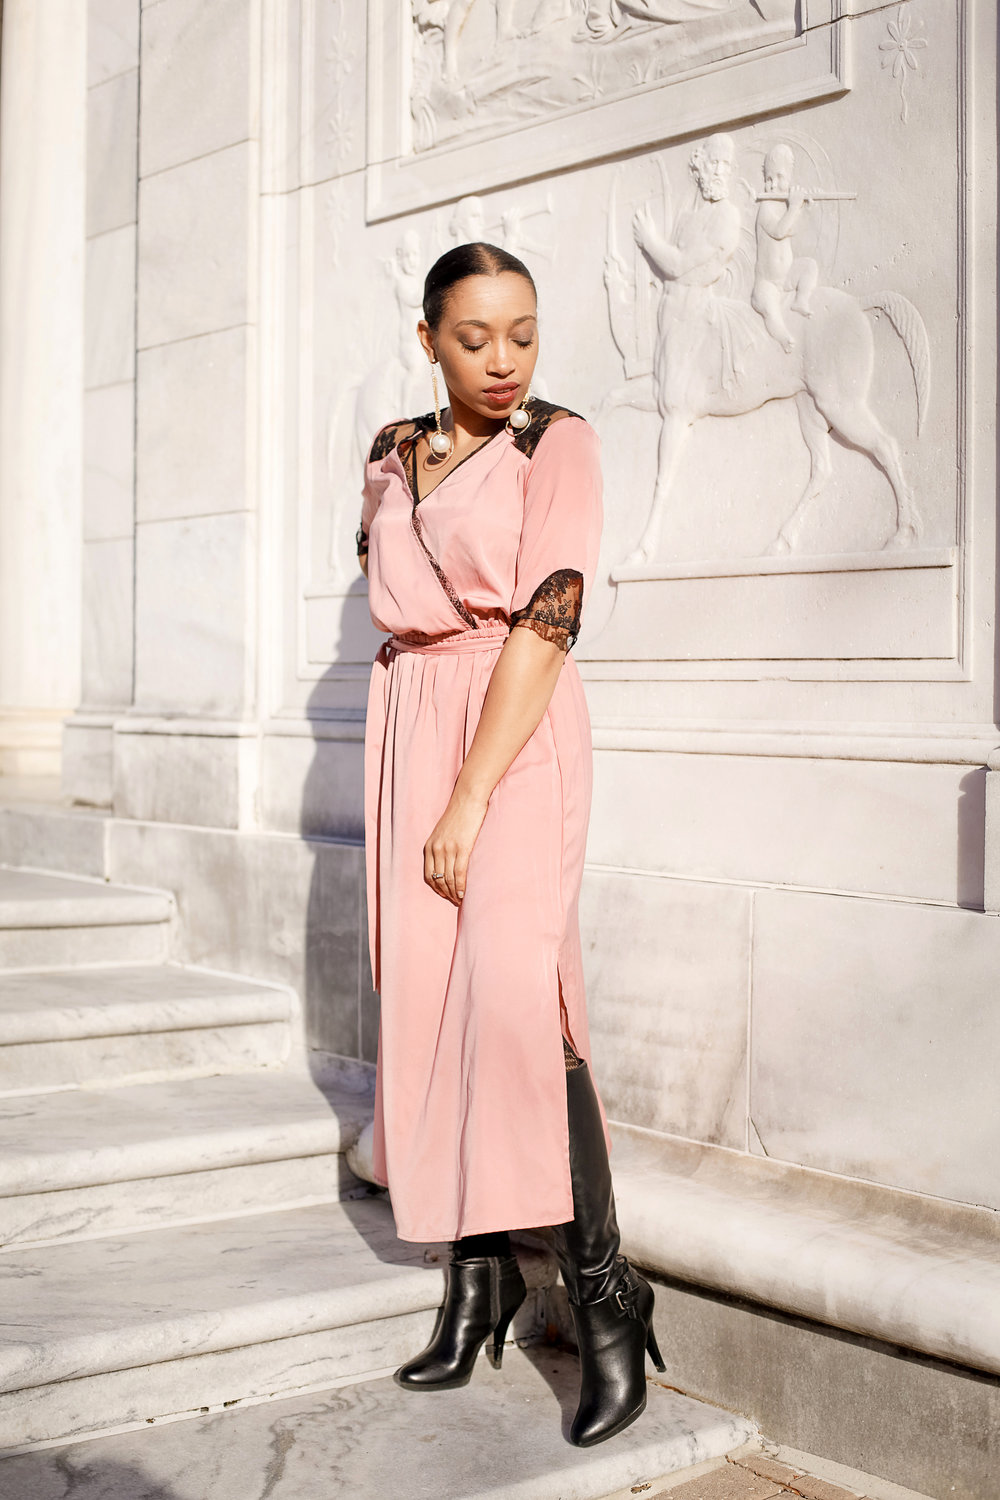 Andrea Fenise Memphis Fashion Blogger shares style post with dress from Target